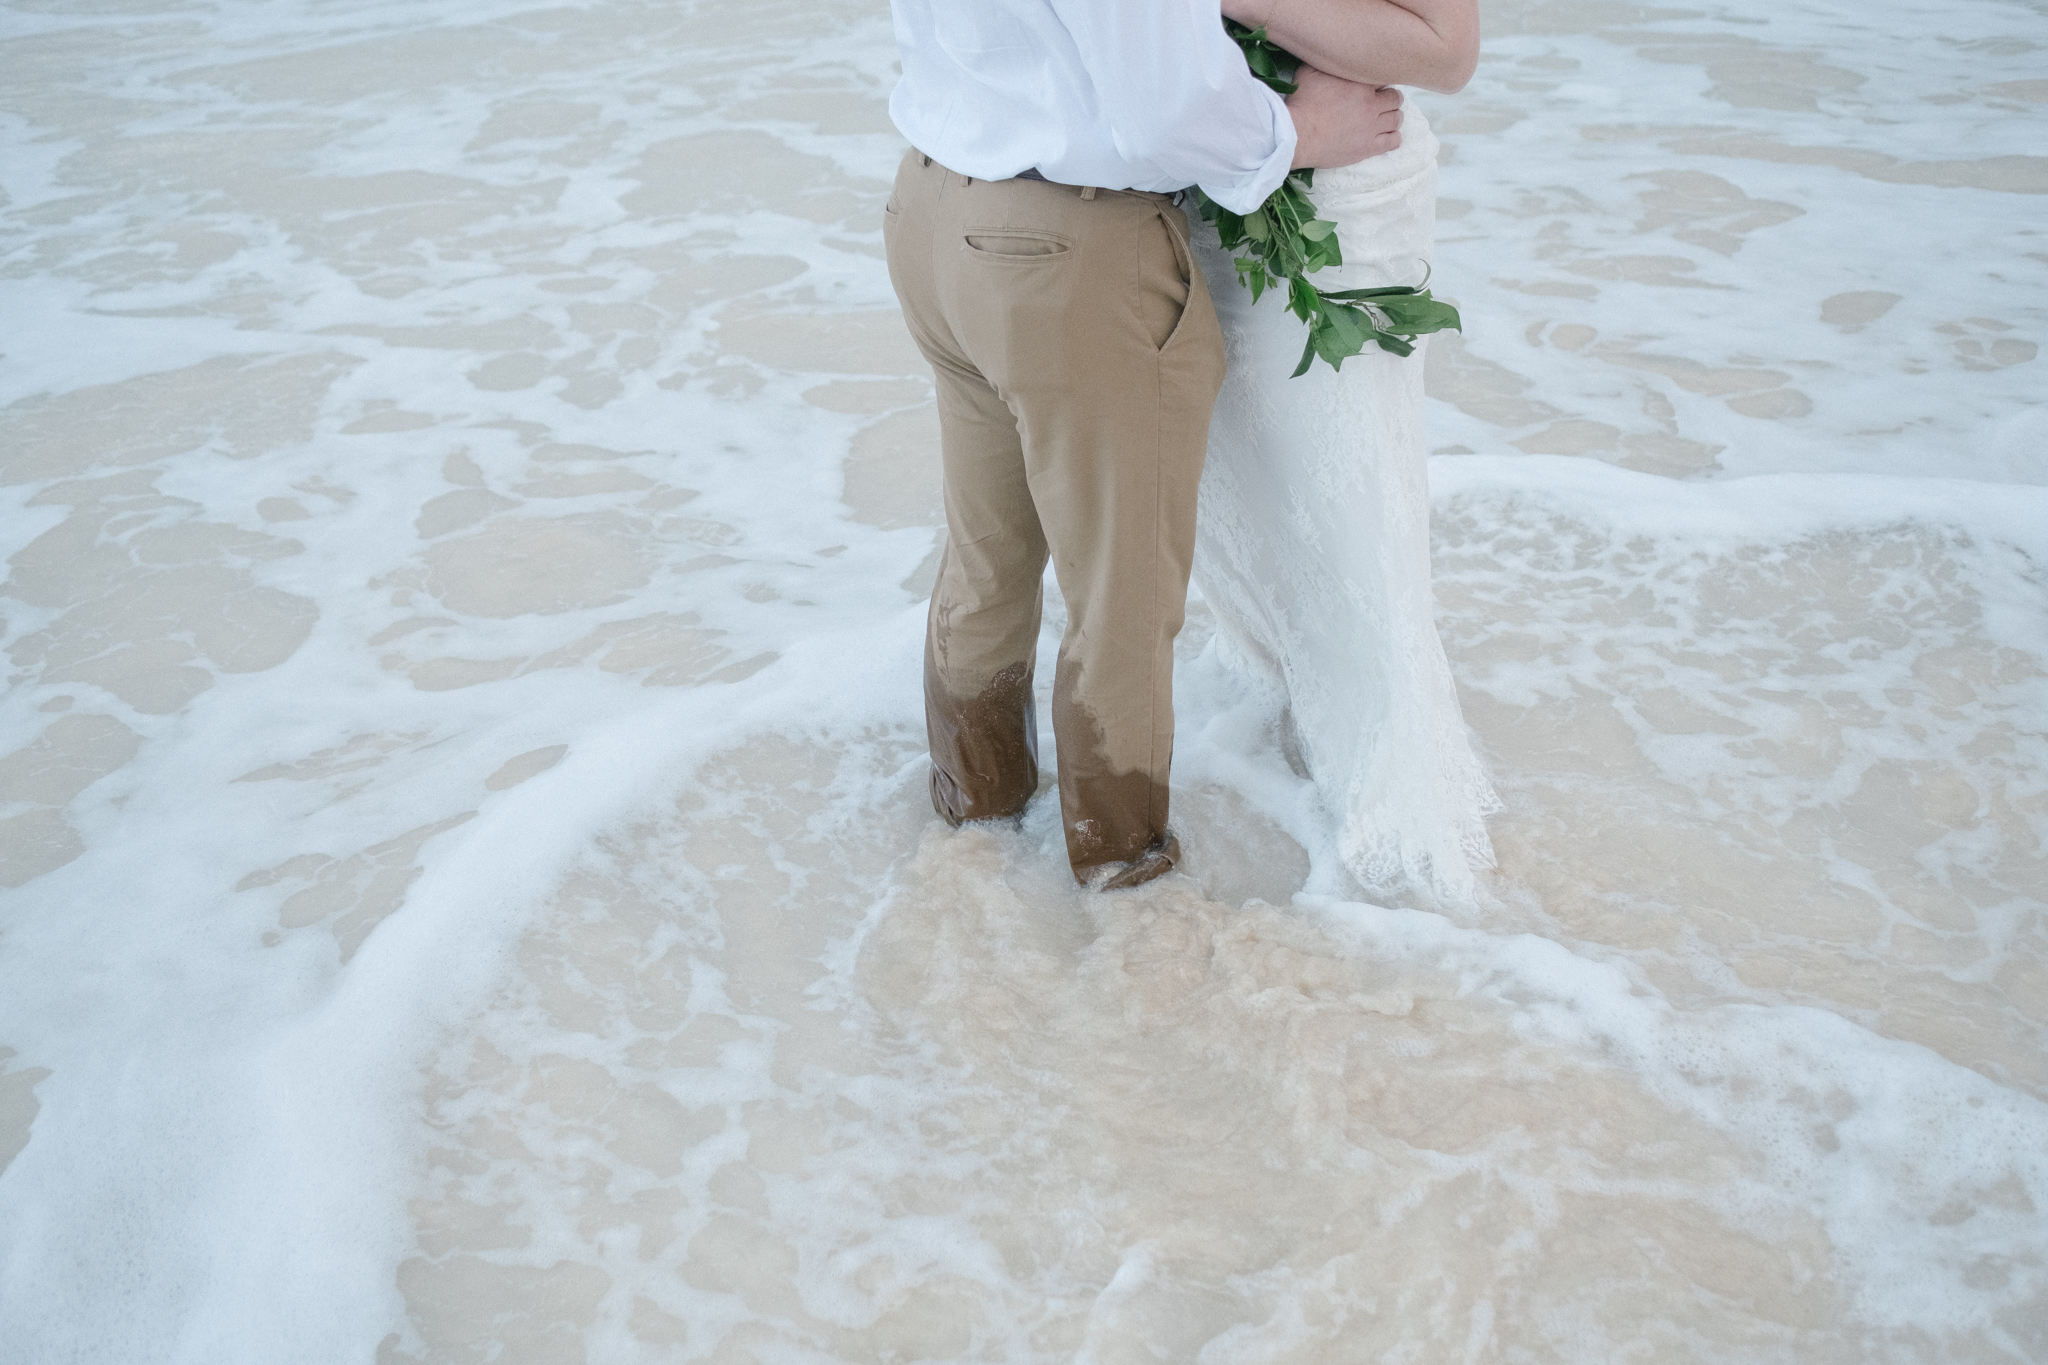 waimanalo_beach_wedding_photographer-39.jpg